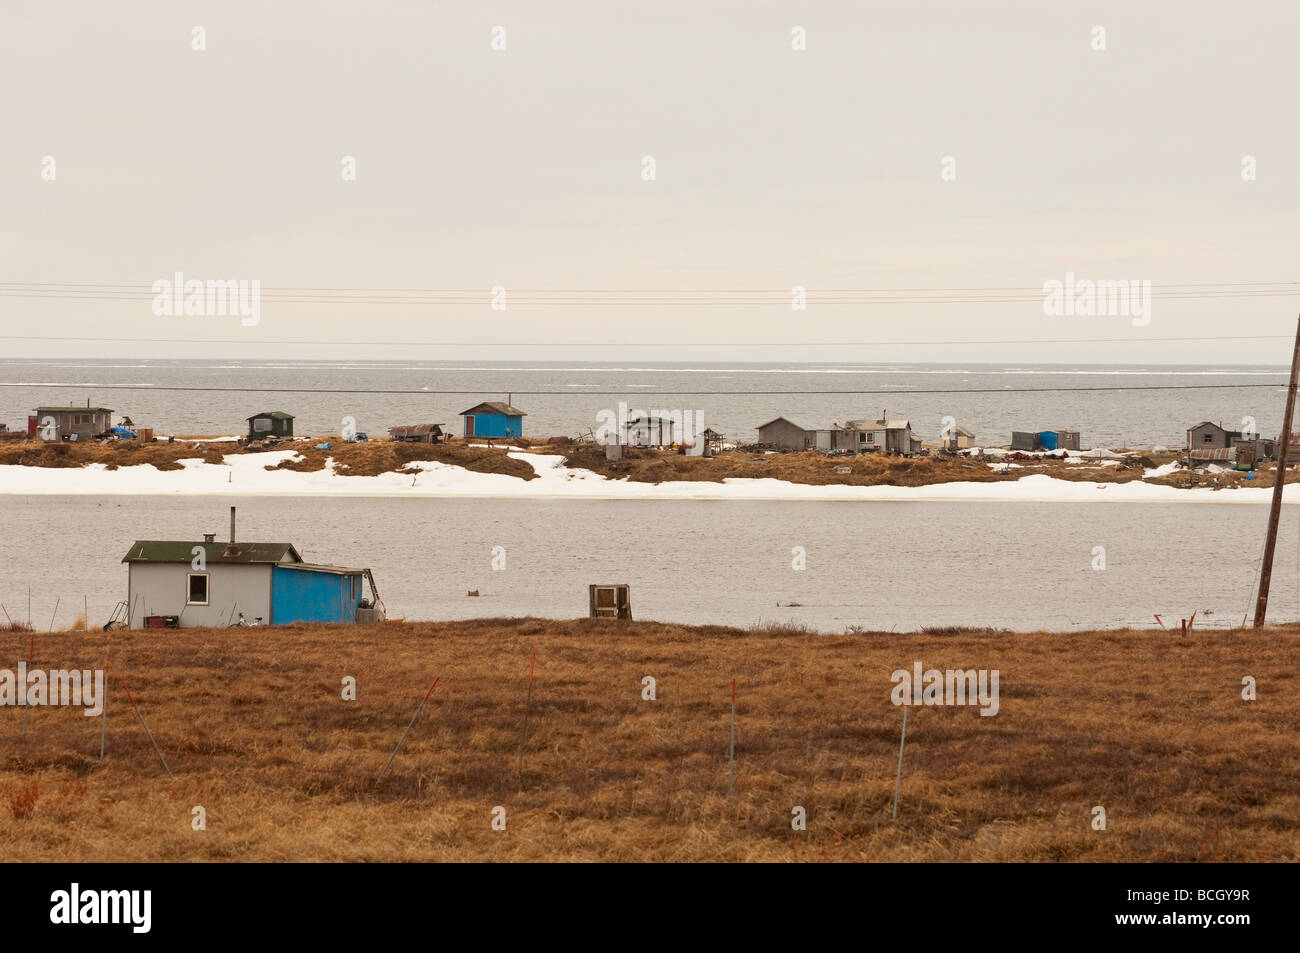 A SUBSISTENCE FISHING CAMP ONCE FORT DAVIS AT THE MOUTH OF THE NOME RIVER ON THE BERING SEA - Stock Image